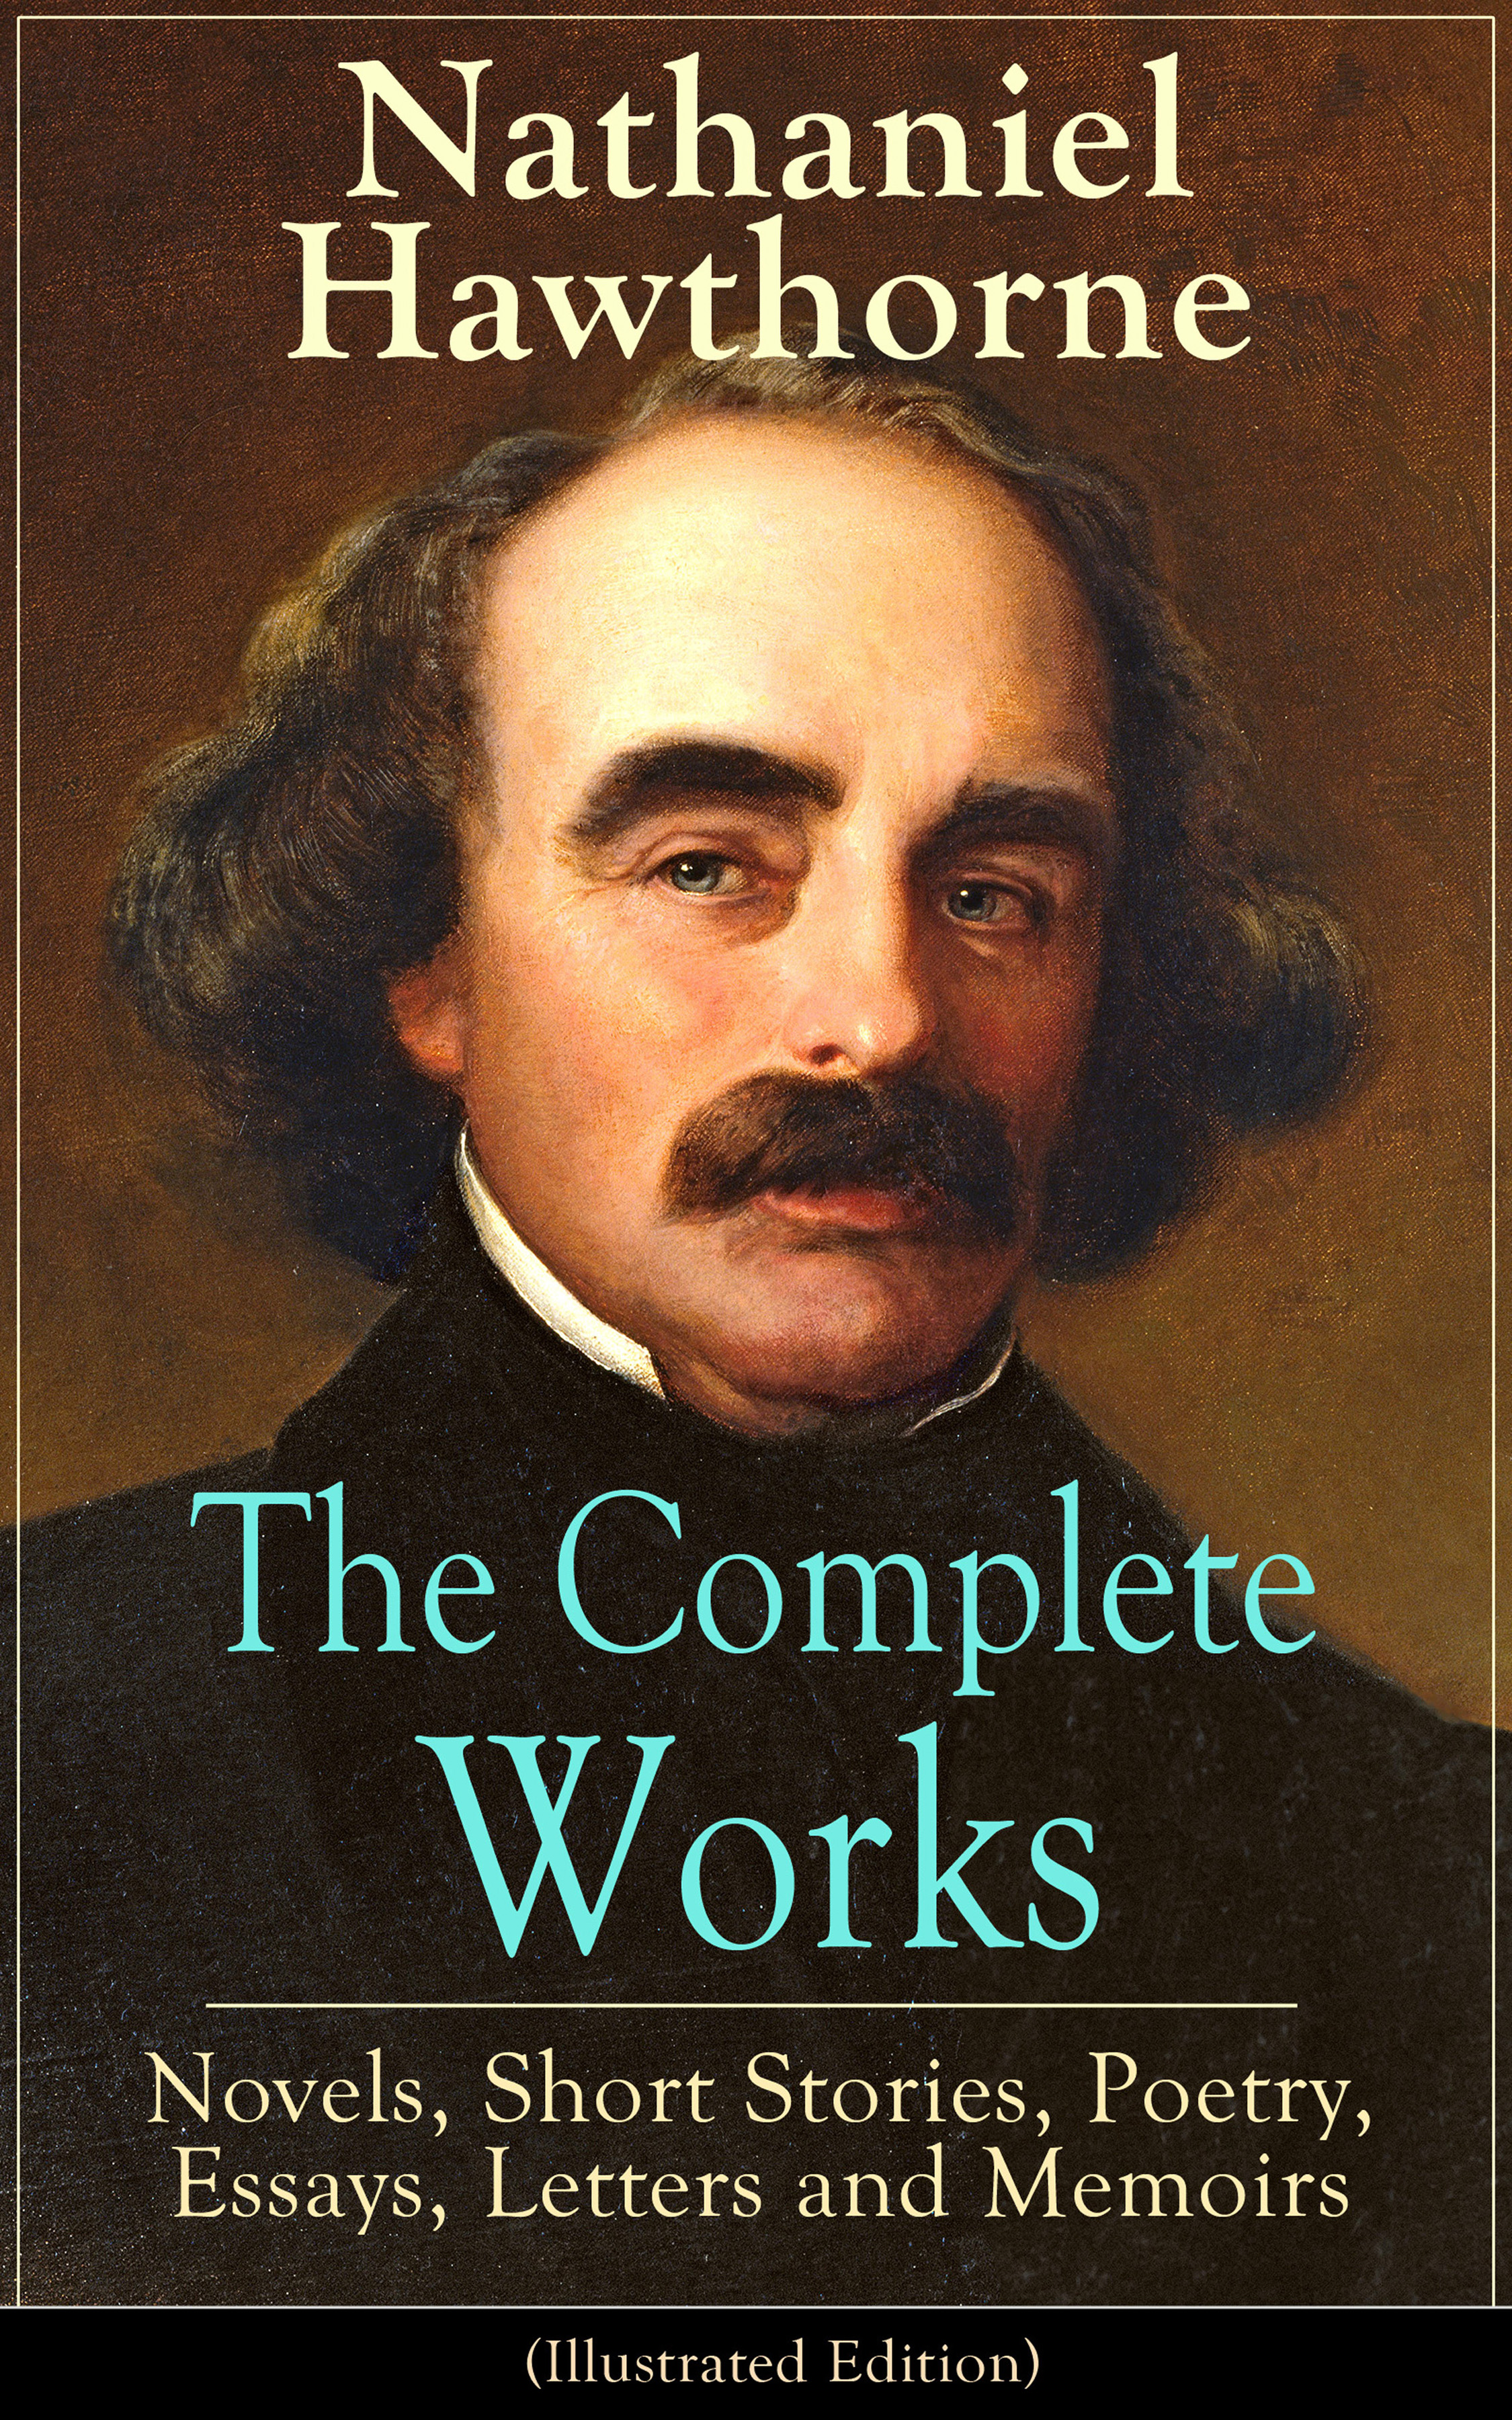 Nathaniel Hawthorne The Complete Works of Nathaniel Hawthorne: Novels, Short Stories, Poetry, Essays, Letters and Memoirs (Illustrated Edition) футболка wearcraft premium slim fit printio радостный крот